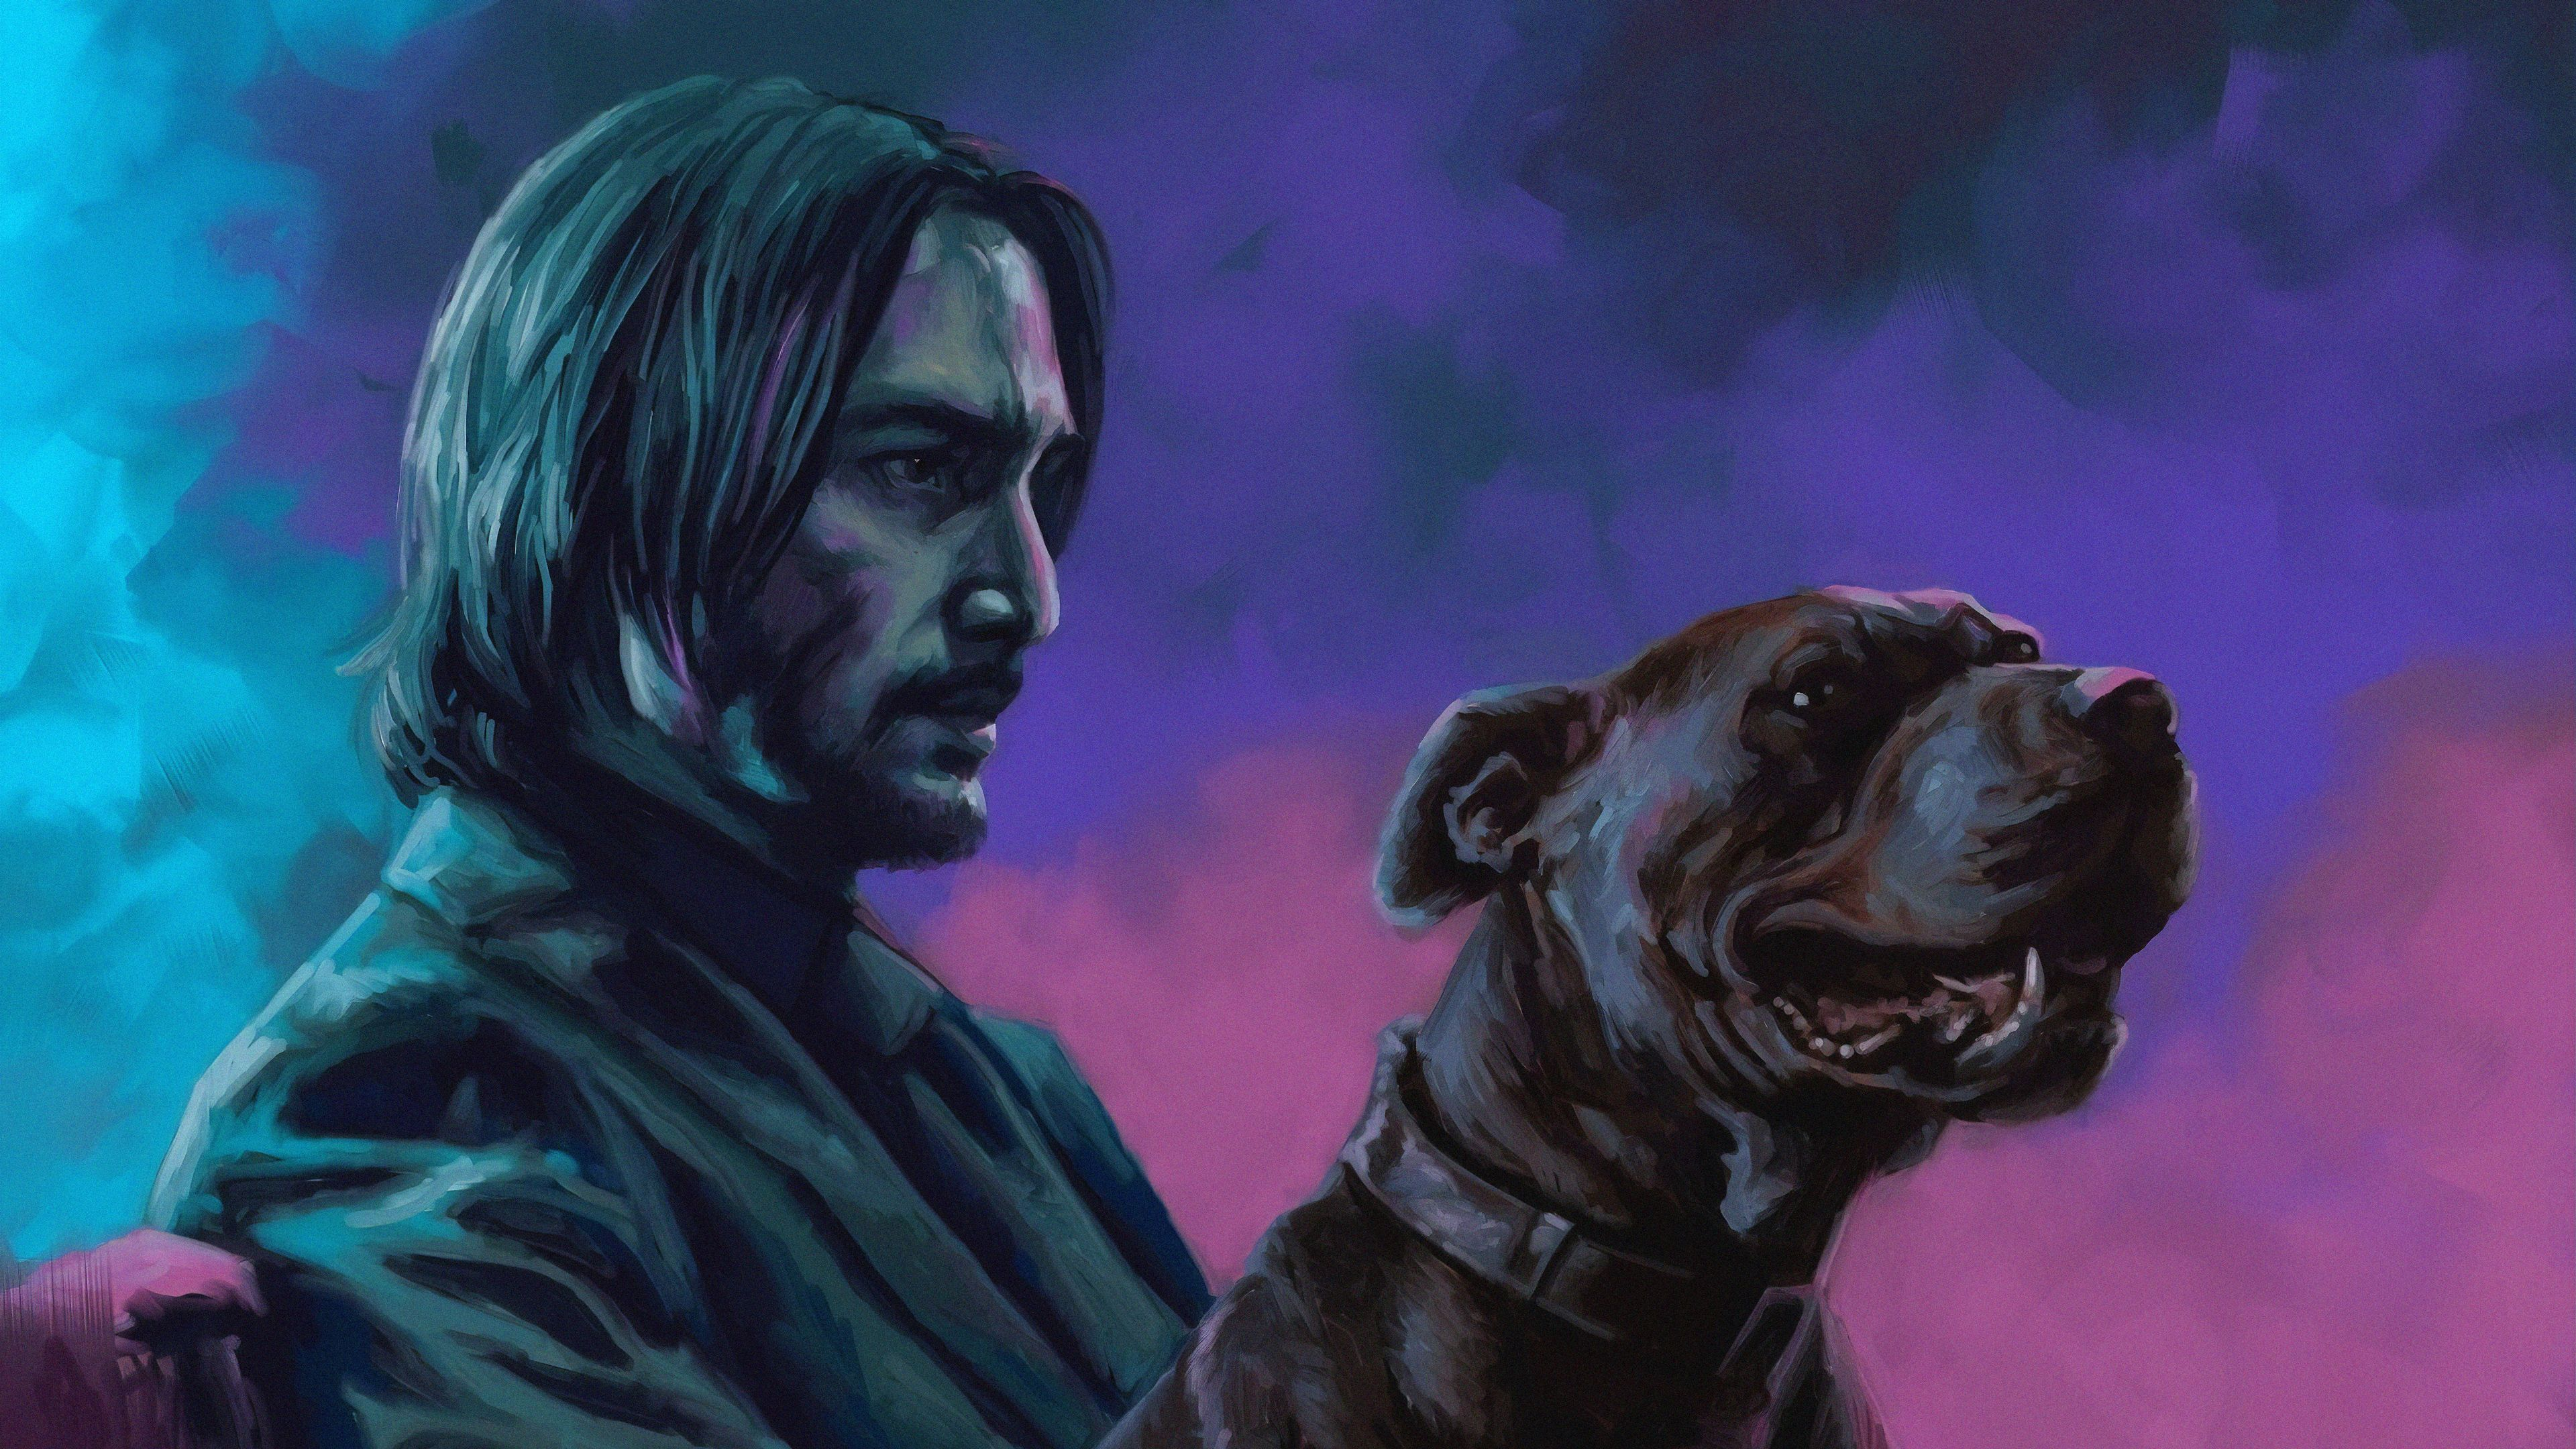 Wallpaper 4k John Wick With Dog 4kwallpapers, artwork